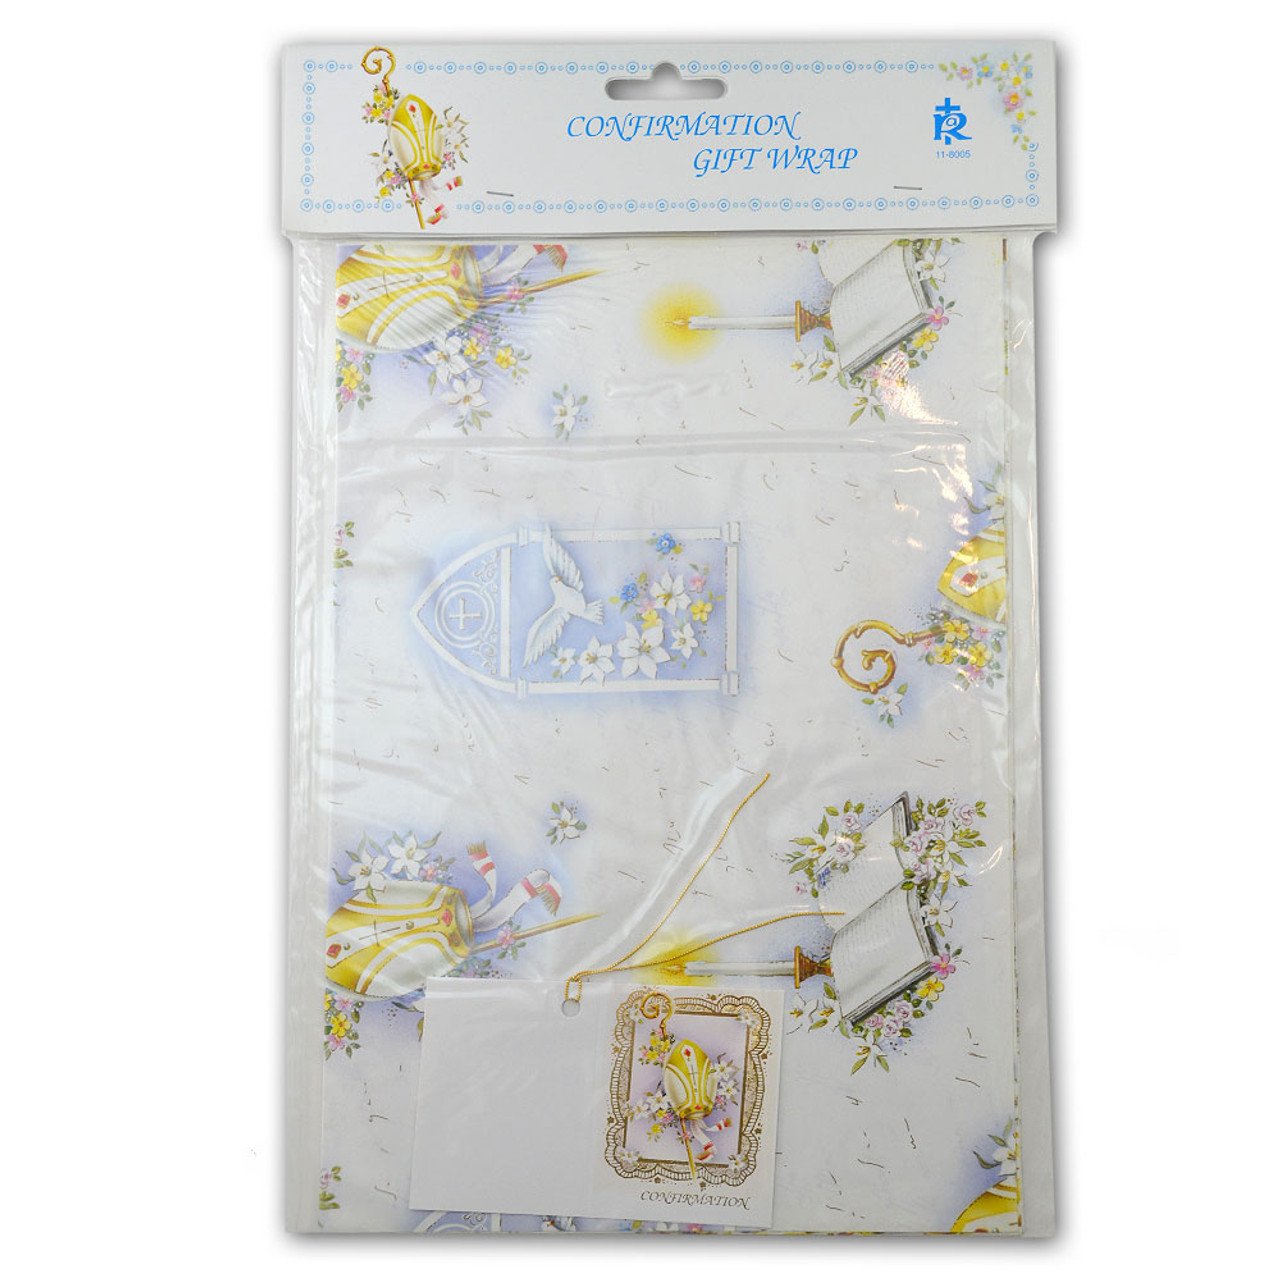 Confirmation Flat Gift Wrap